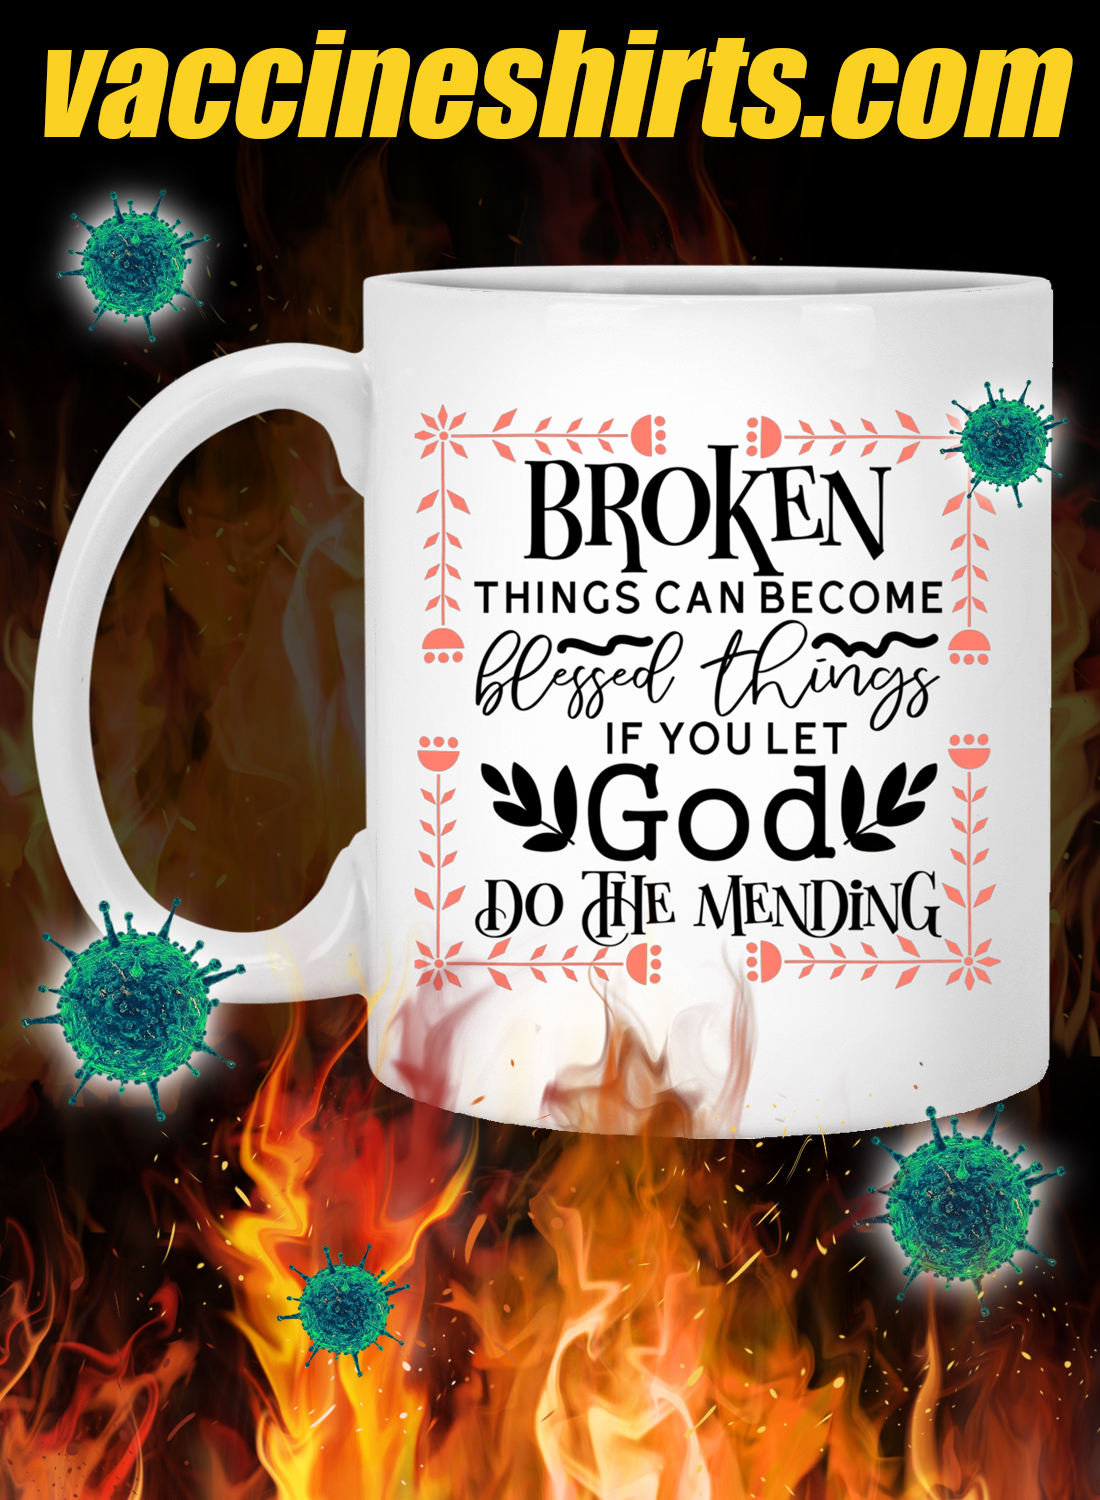 Broken things can become blessed things mug 2